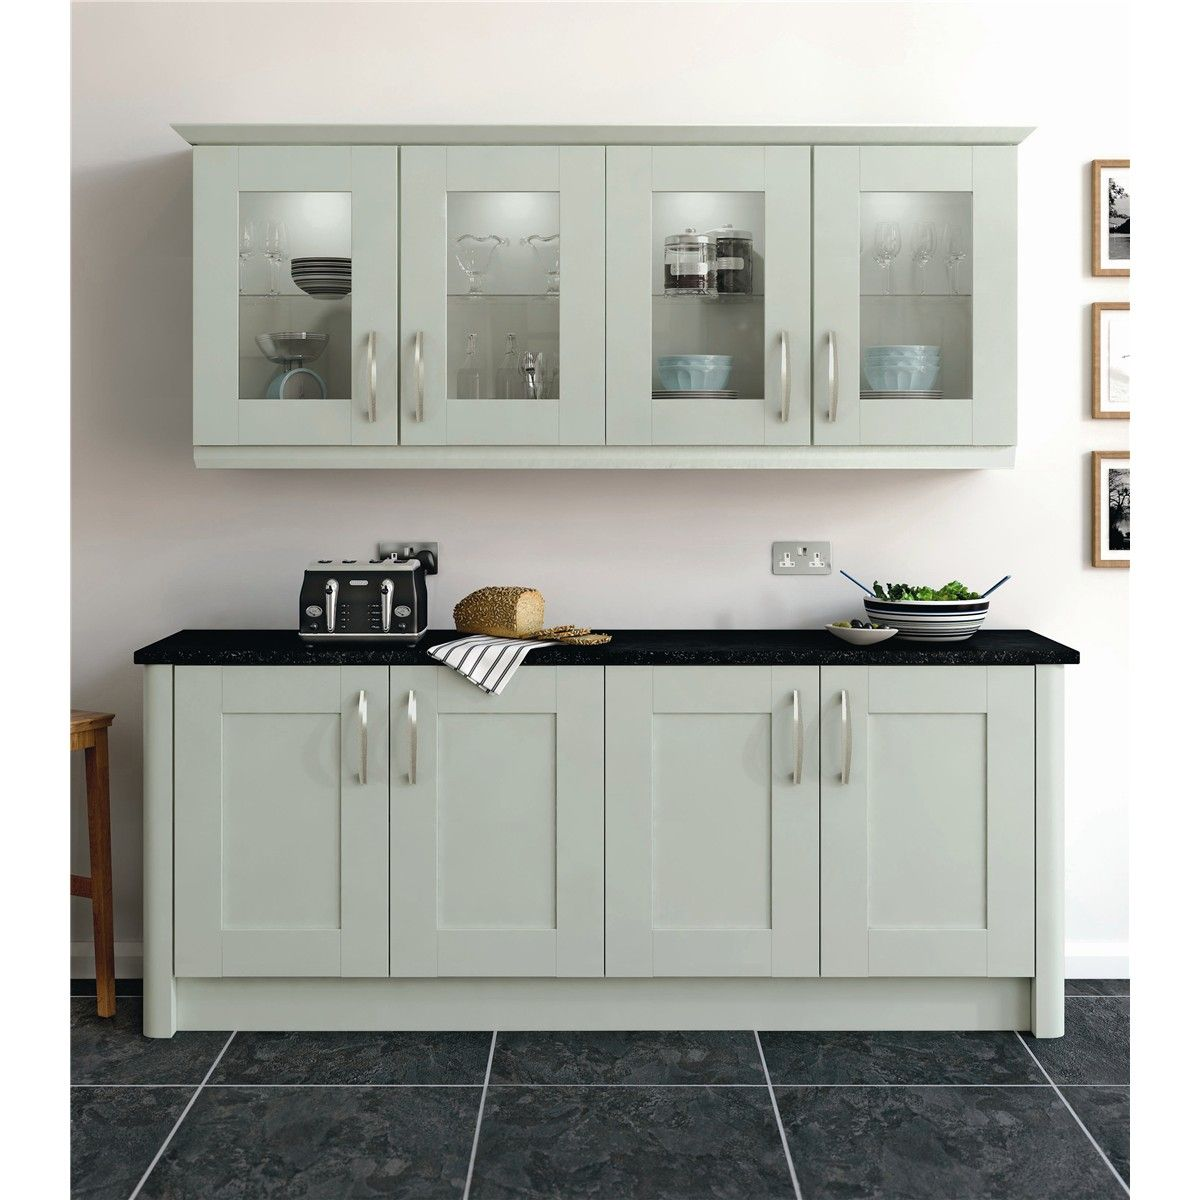 Image Result For SHAKER KITCHEN Wall UNITS